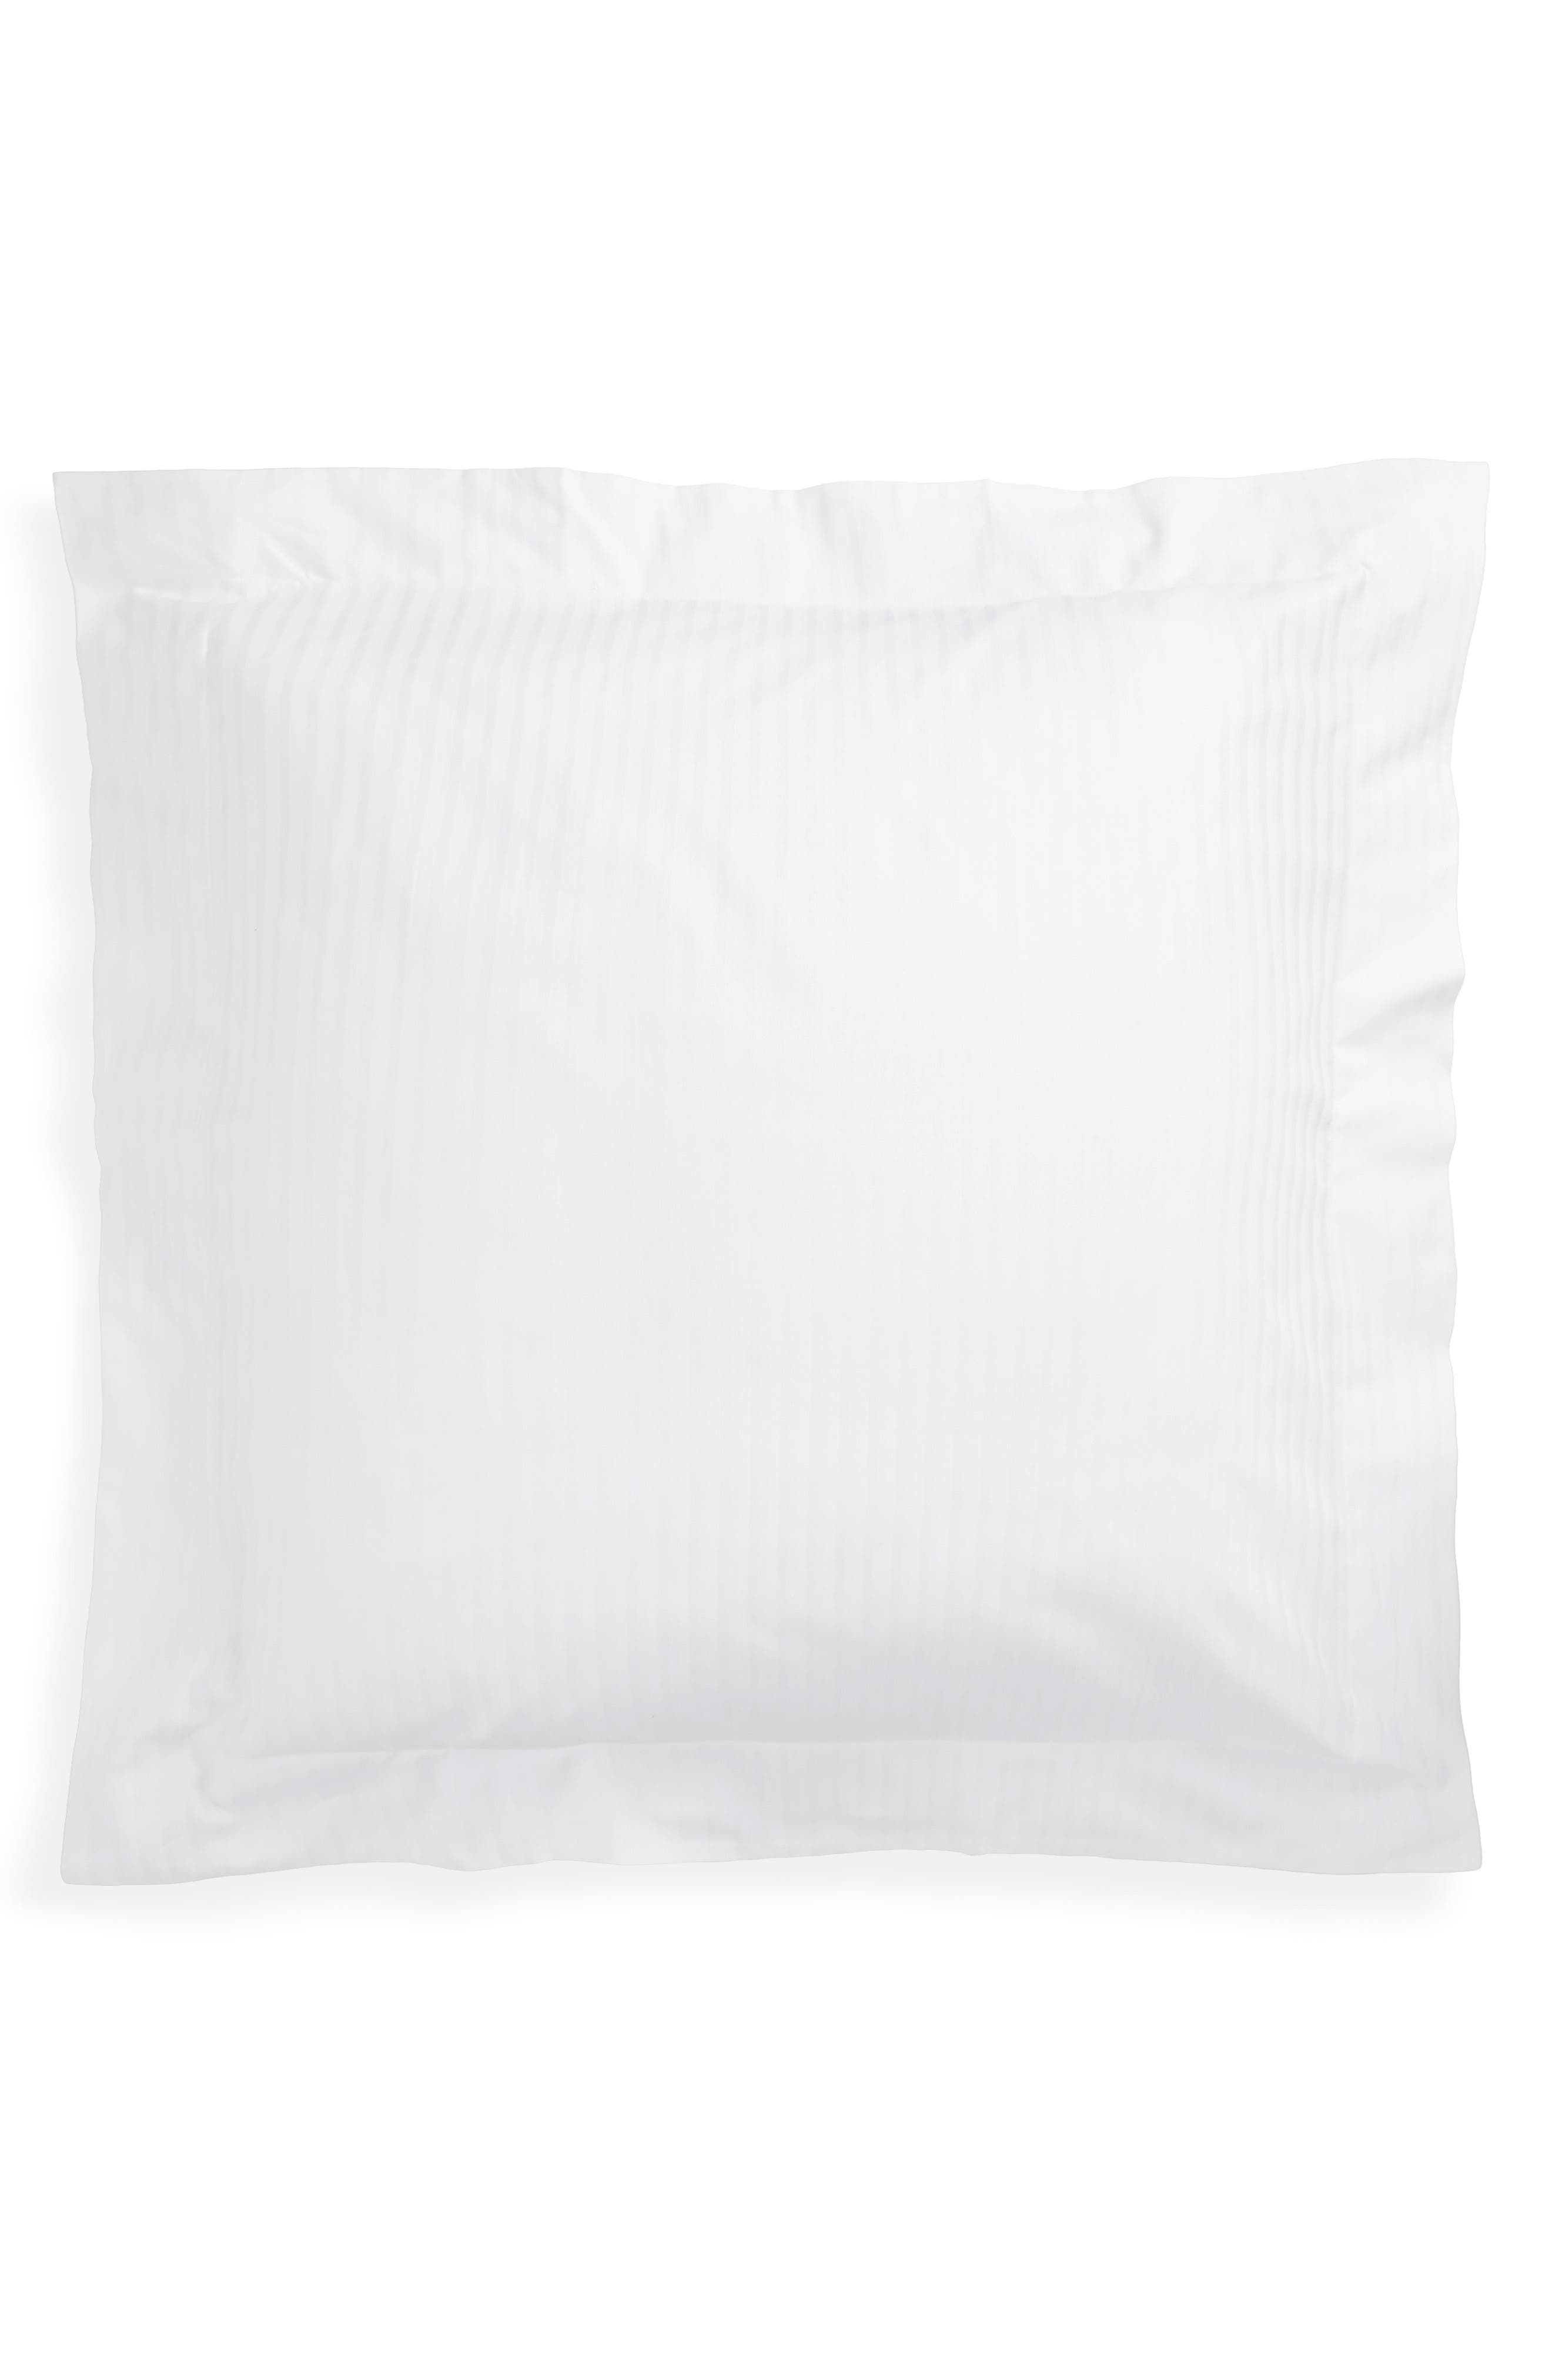 for hotel hilton pacific double gallery pillows down around blanket pillow cushion coast sale